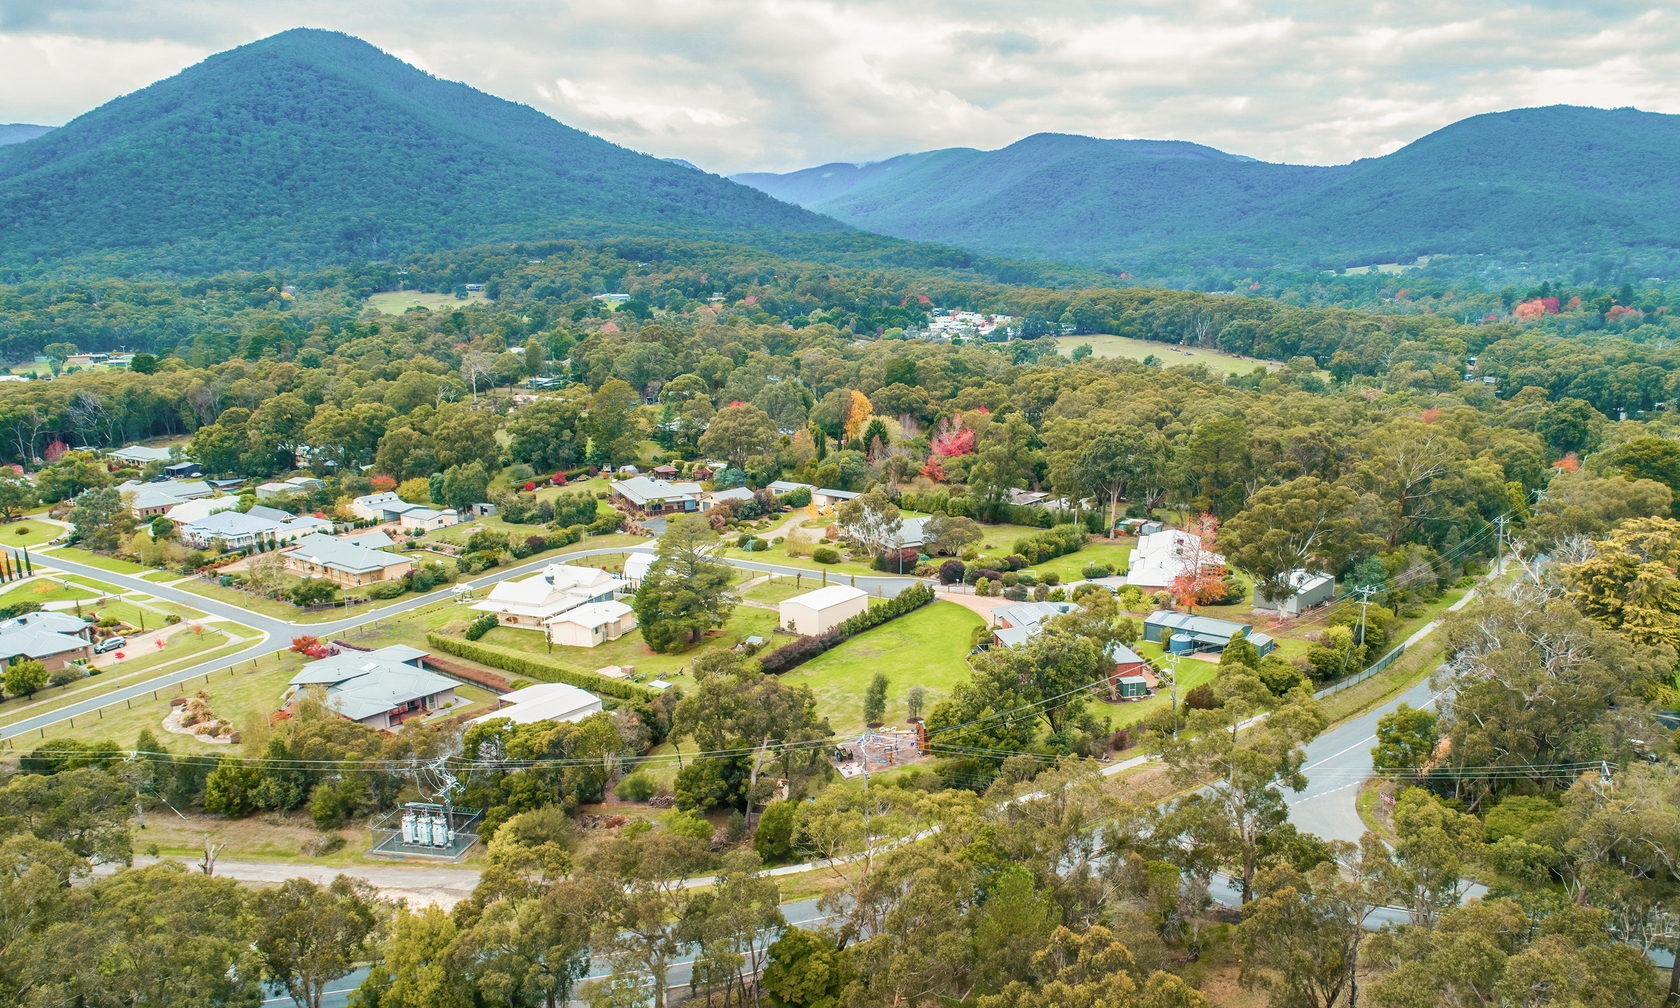 Holiday rental houses in Healesville